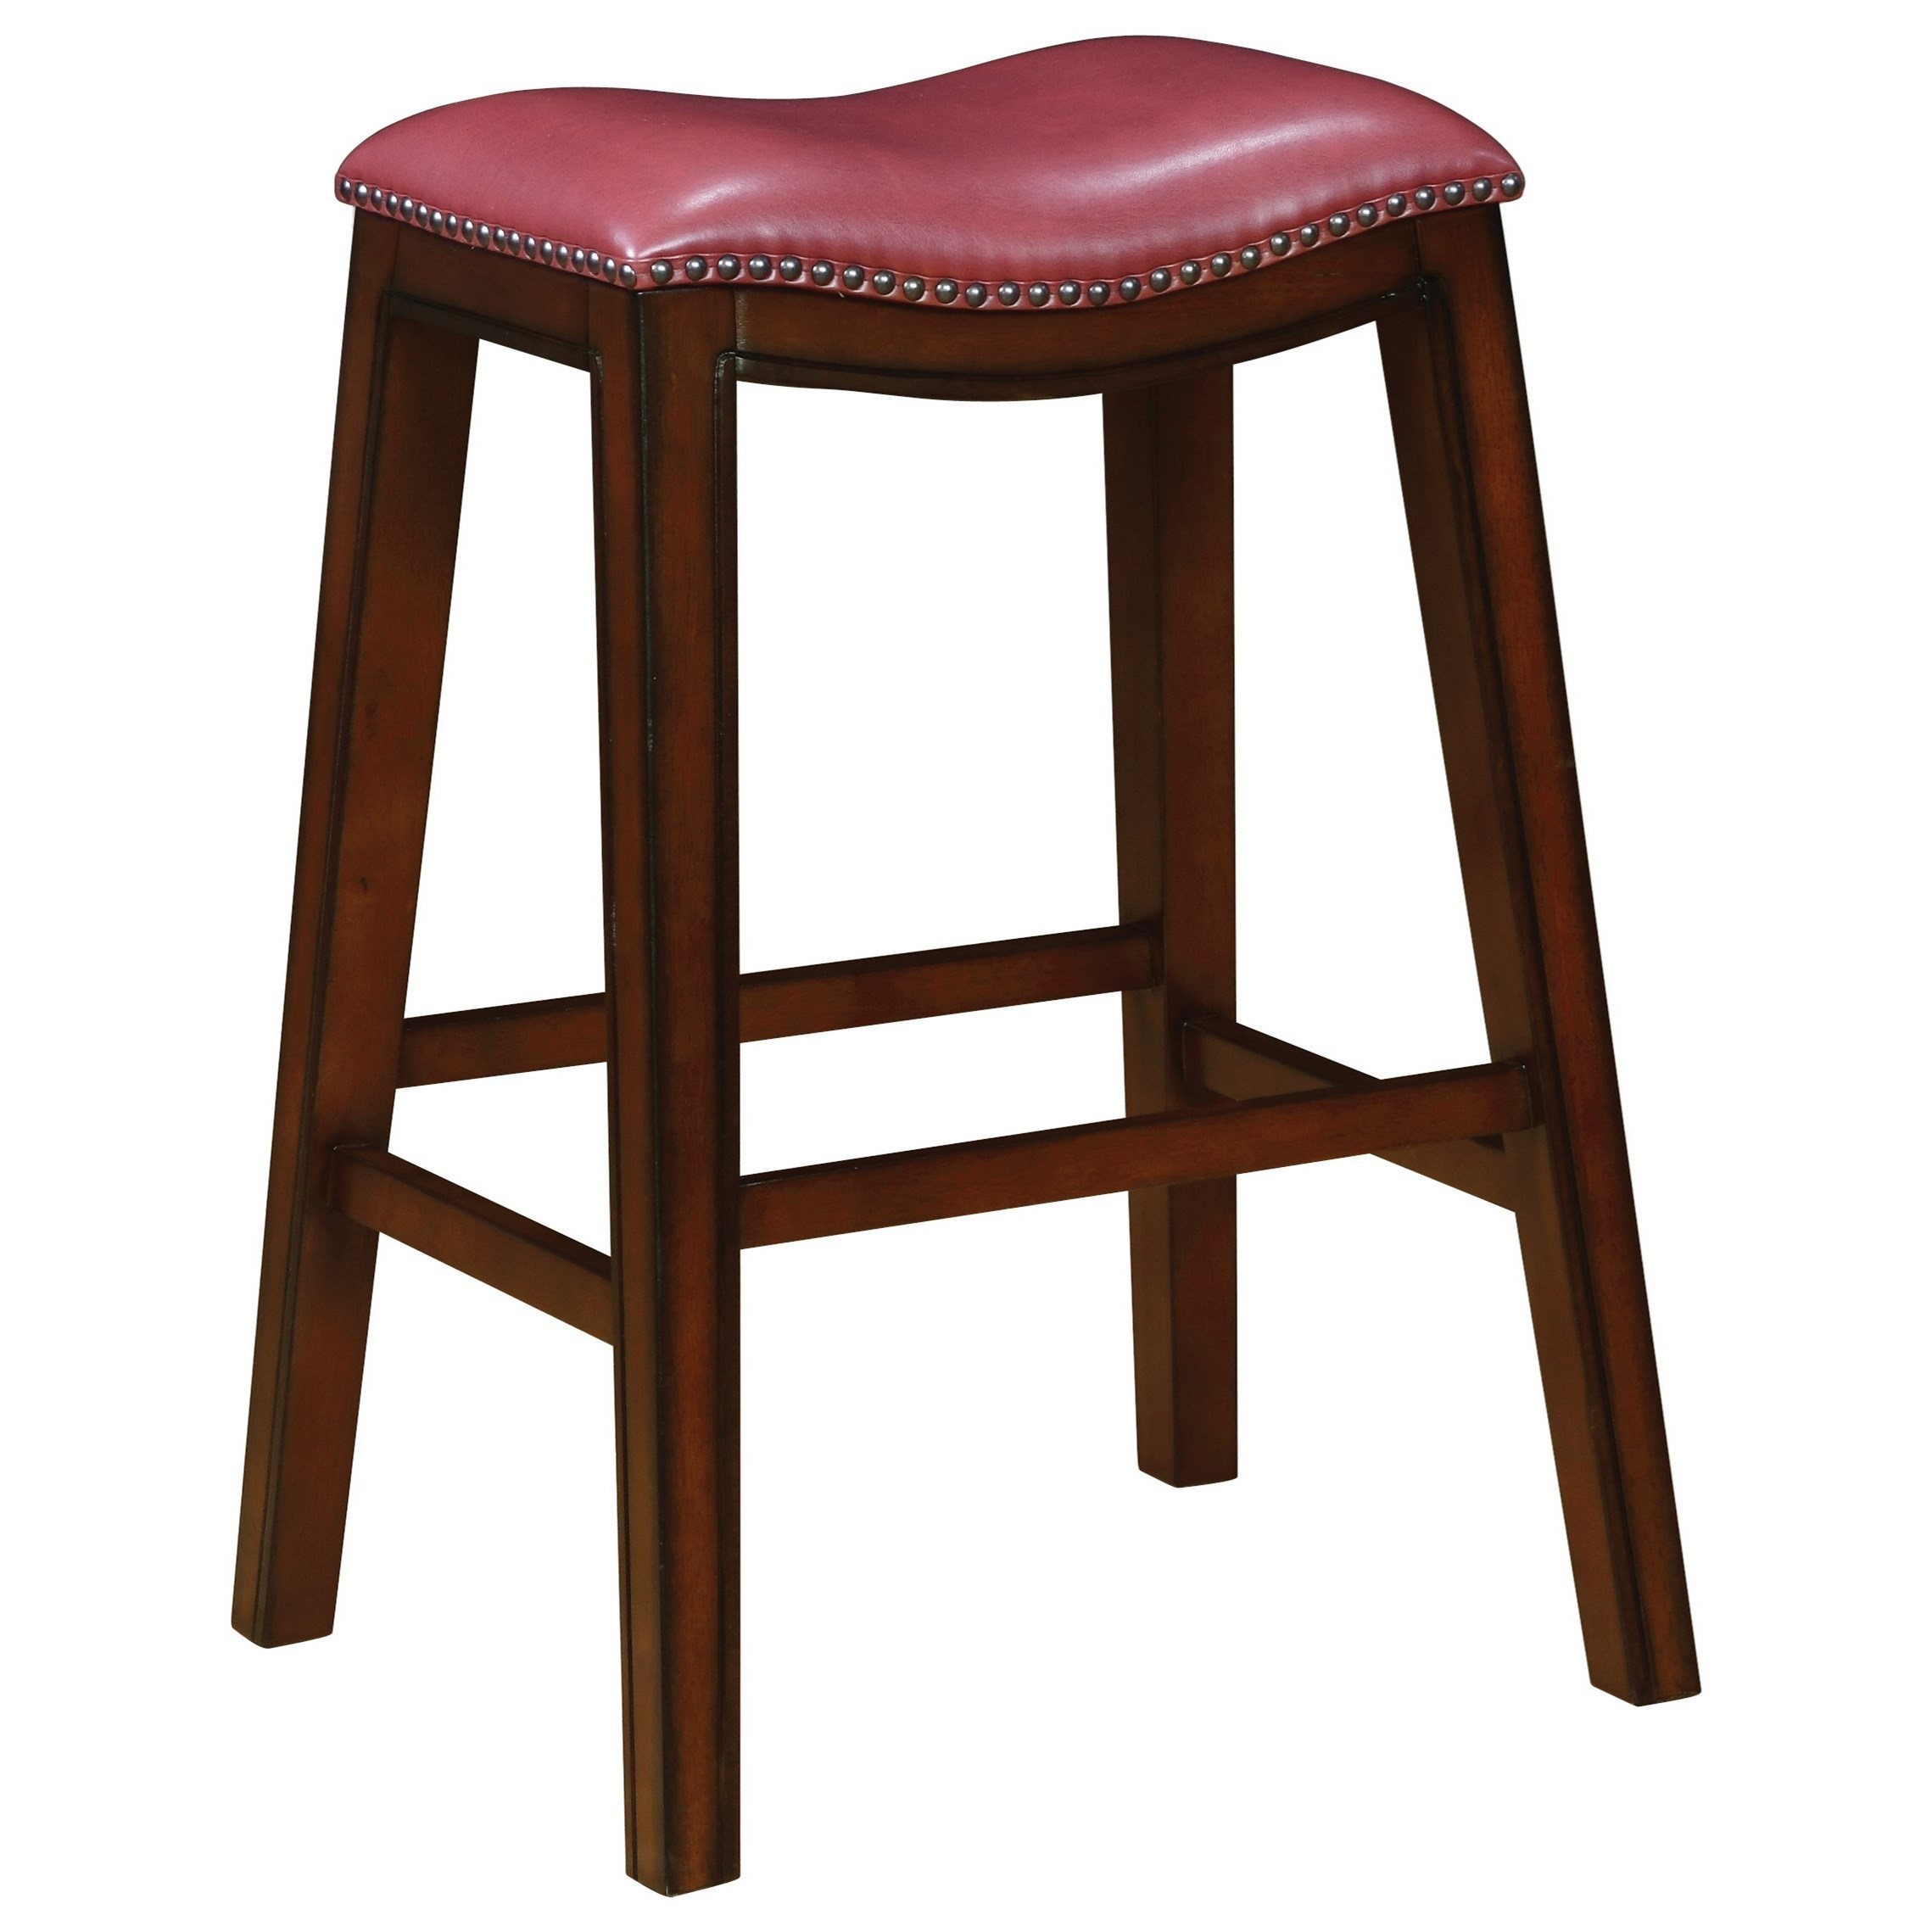 Upholstered Backless Bar Stool With Nailhead Trim Dining